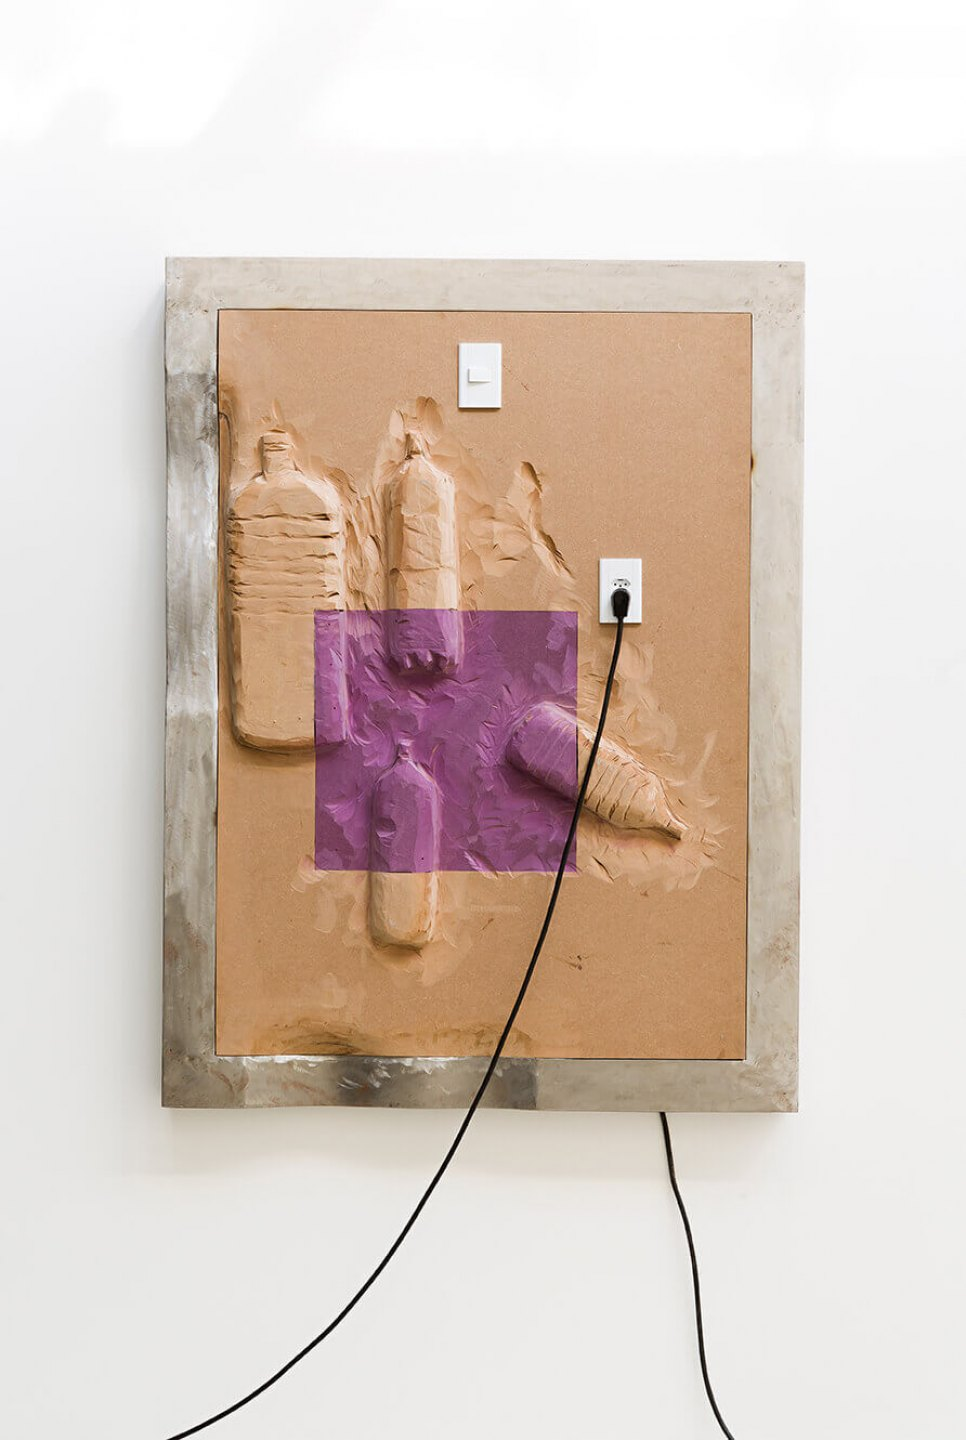 Neïl Beloufa, <em>Four big bottles, from Vintage series</em>, 2014, MDF and metal, 160 × 120 × 10 cm - Mendes Wood DM